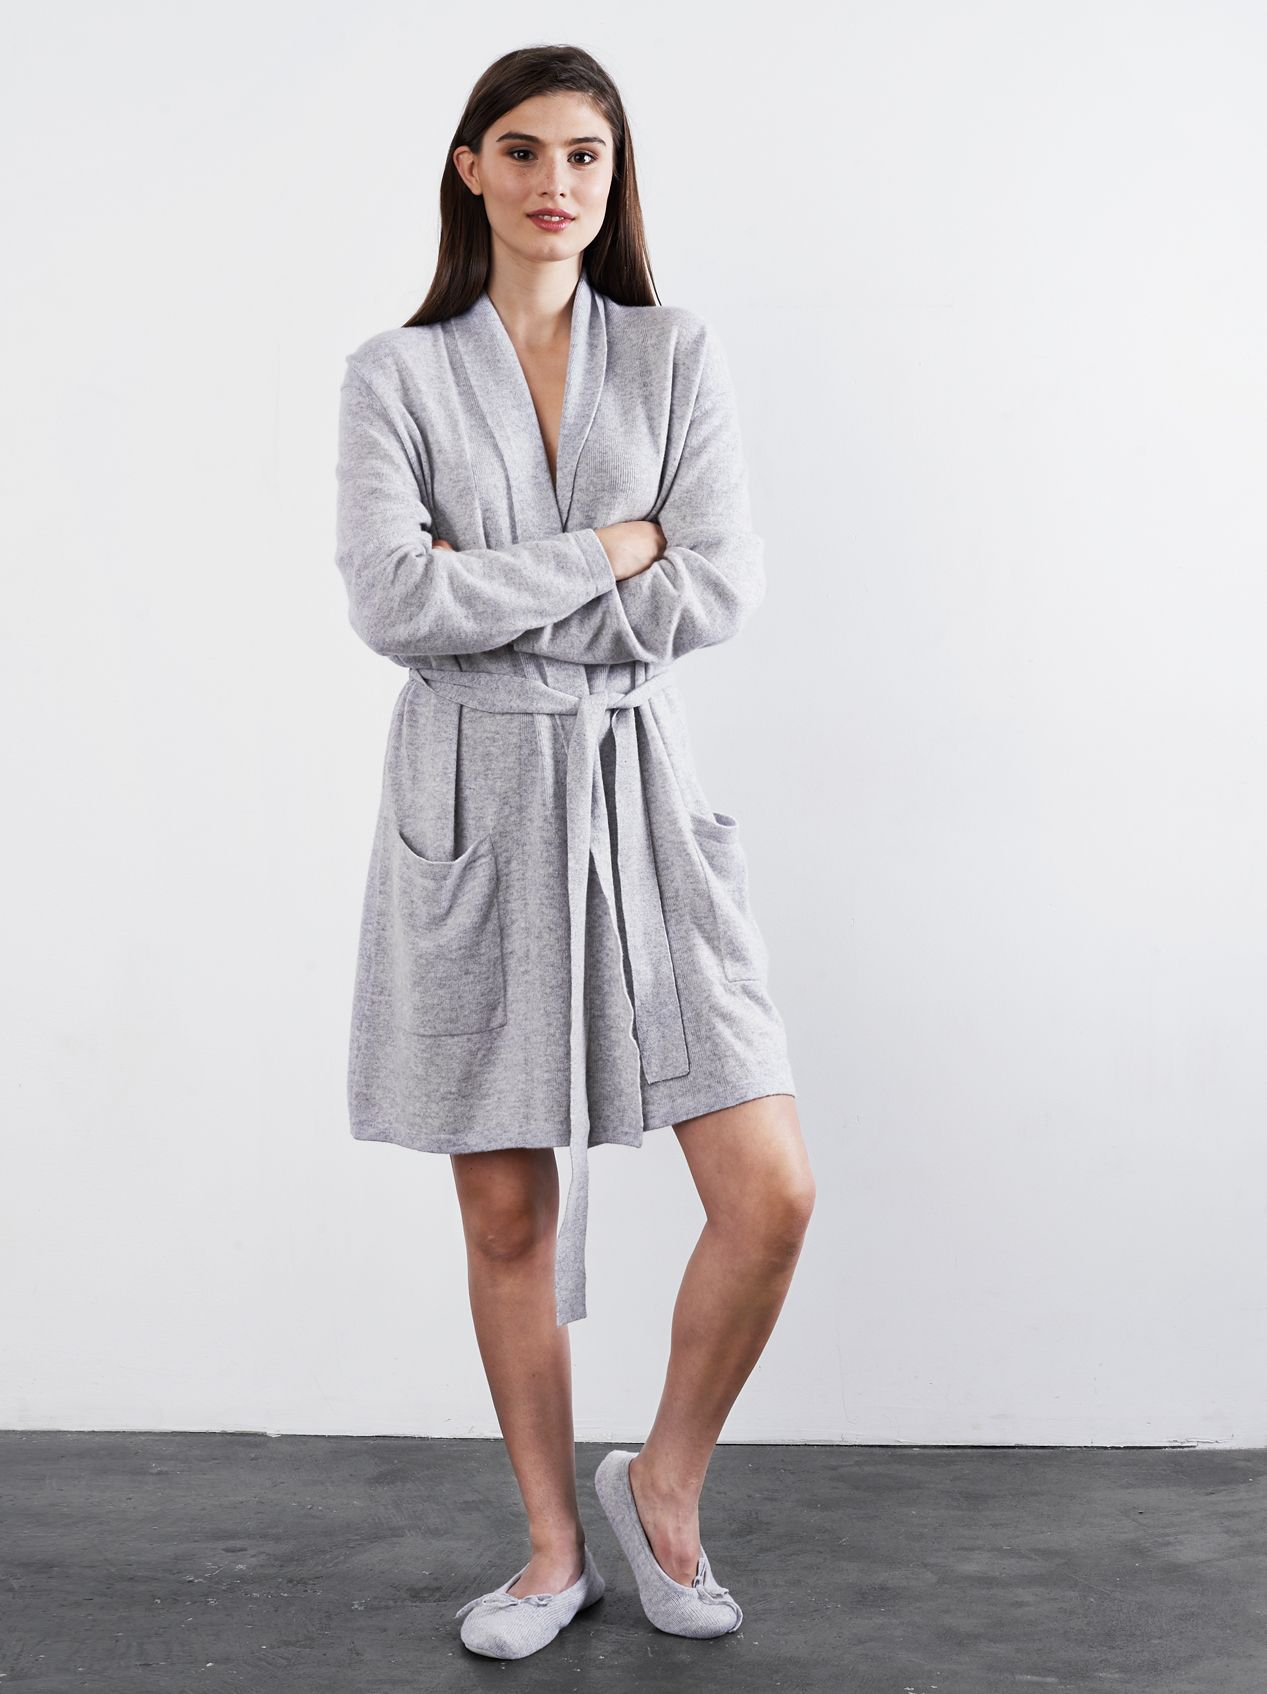 Soft Goat Cashmere Robe in Light Grey  6d5fef07f